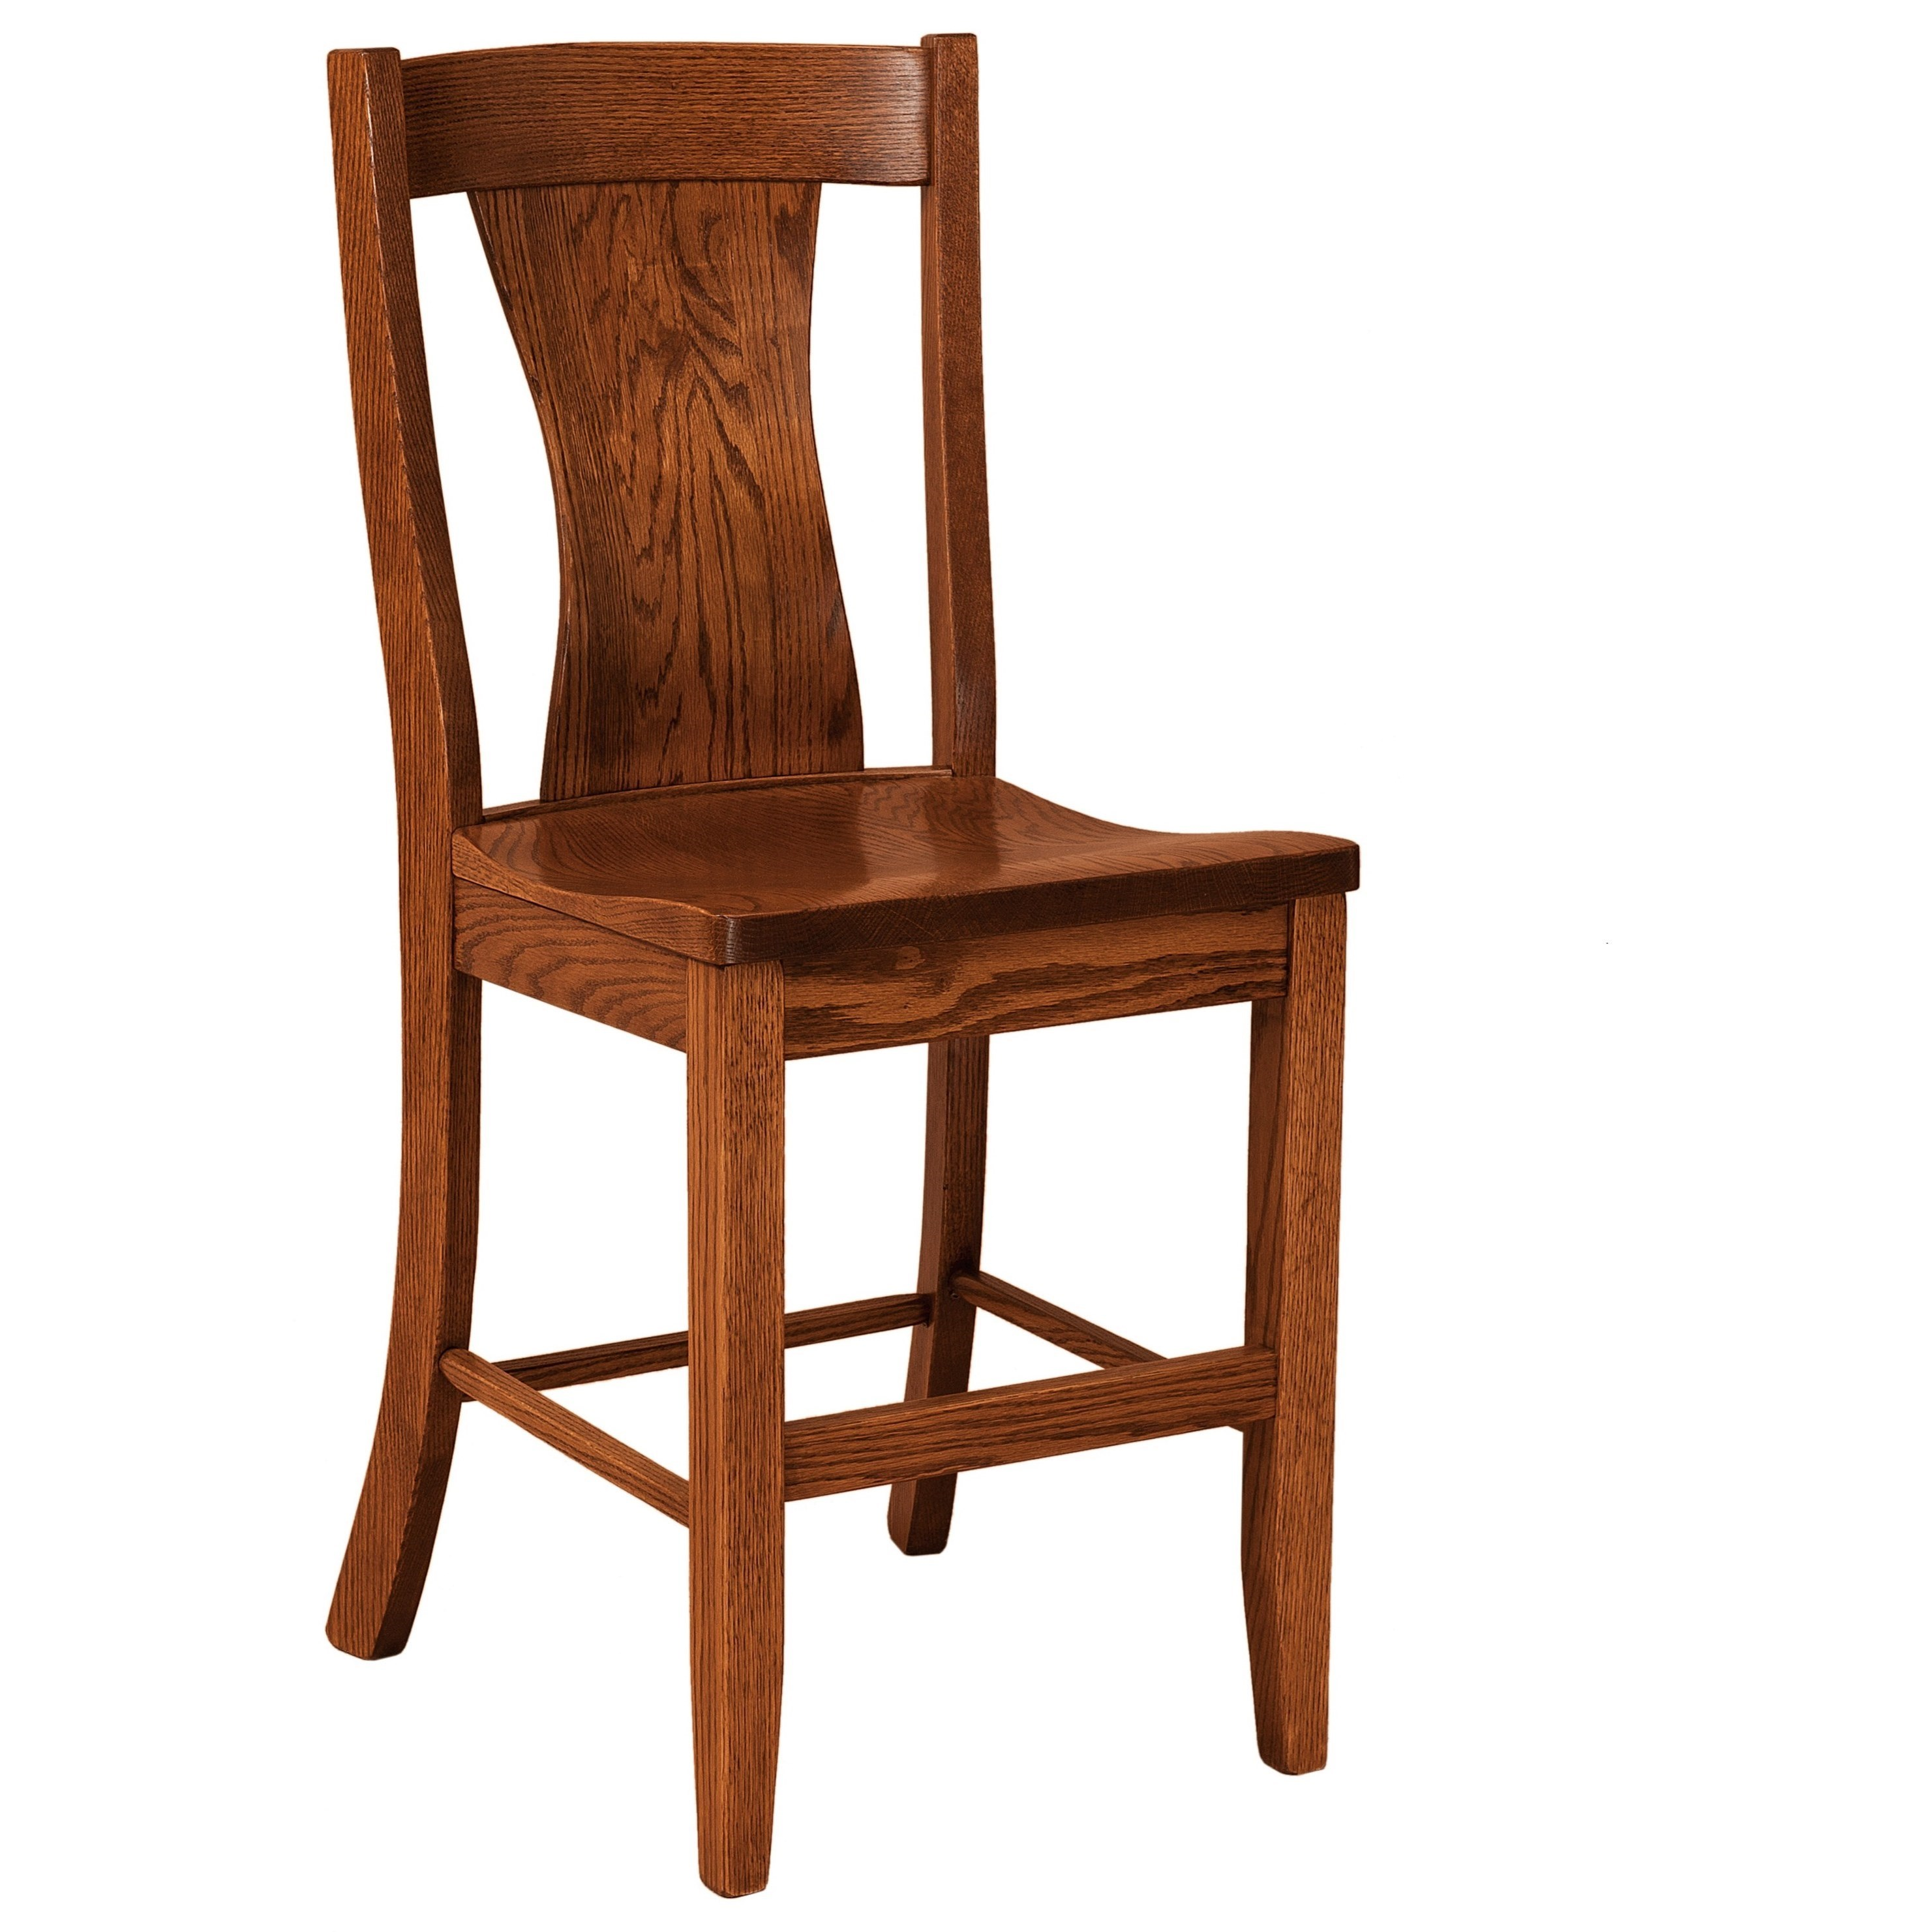 Westin Stationary Bar Height Stool - Wood Seat by F&N Woodworking at Mueller Furniture